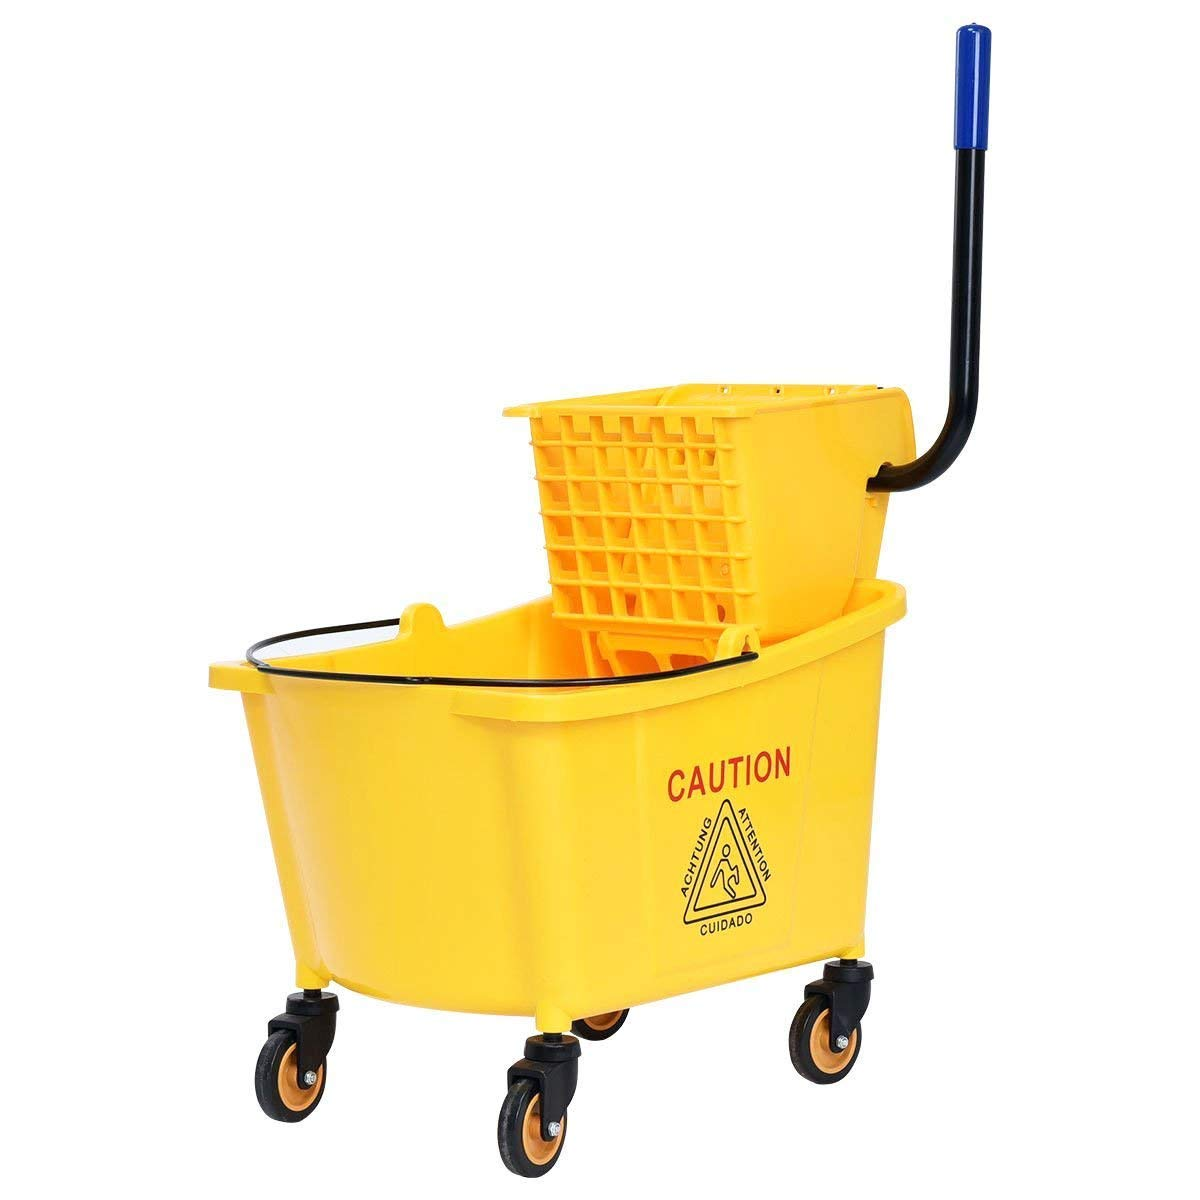 Goplus Commercial Mop Bucket Side Press Wringer Cleaning Caddy with 31 Quart Larger Capacity, Yellow